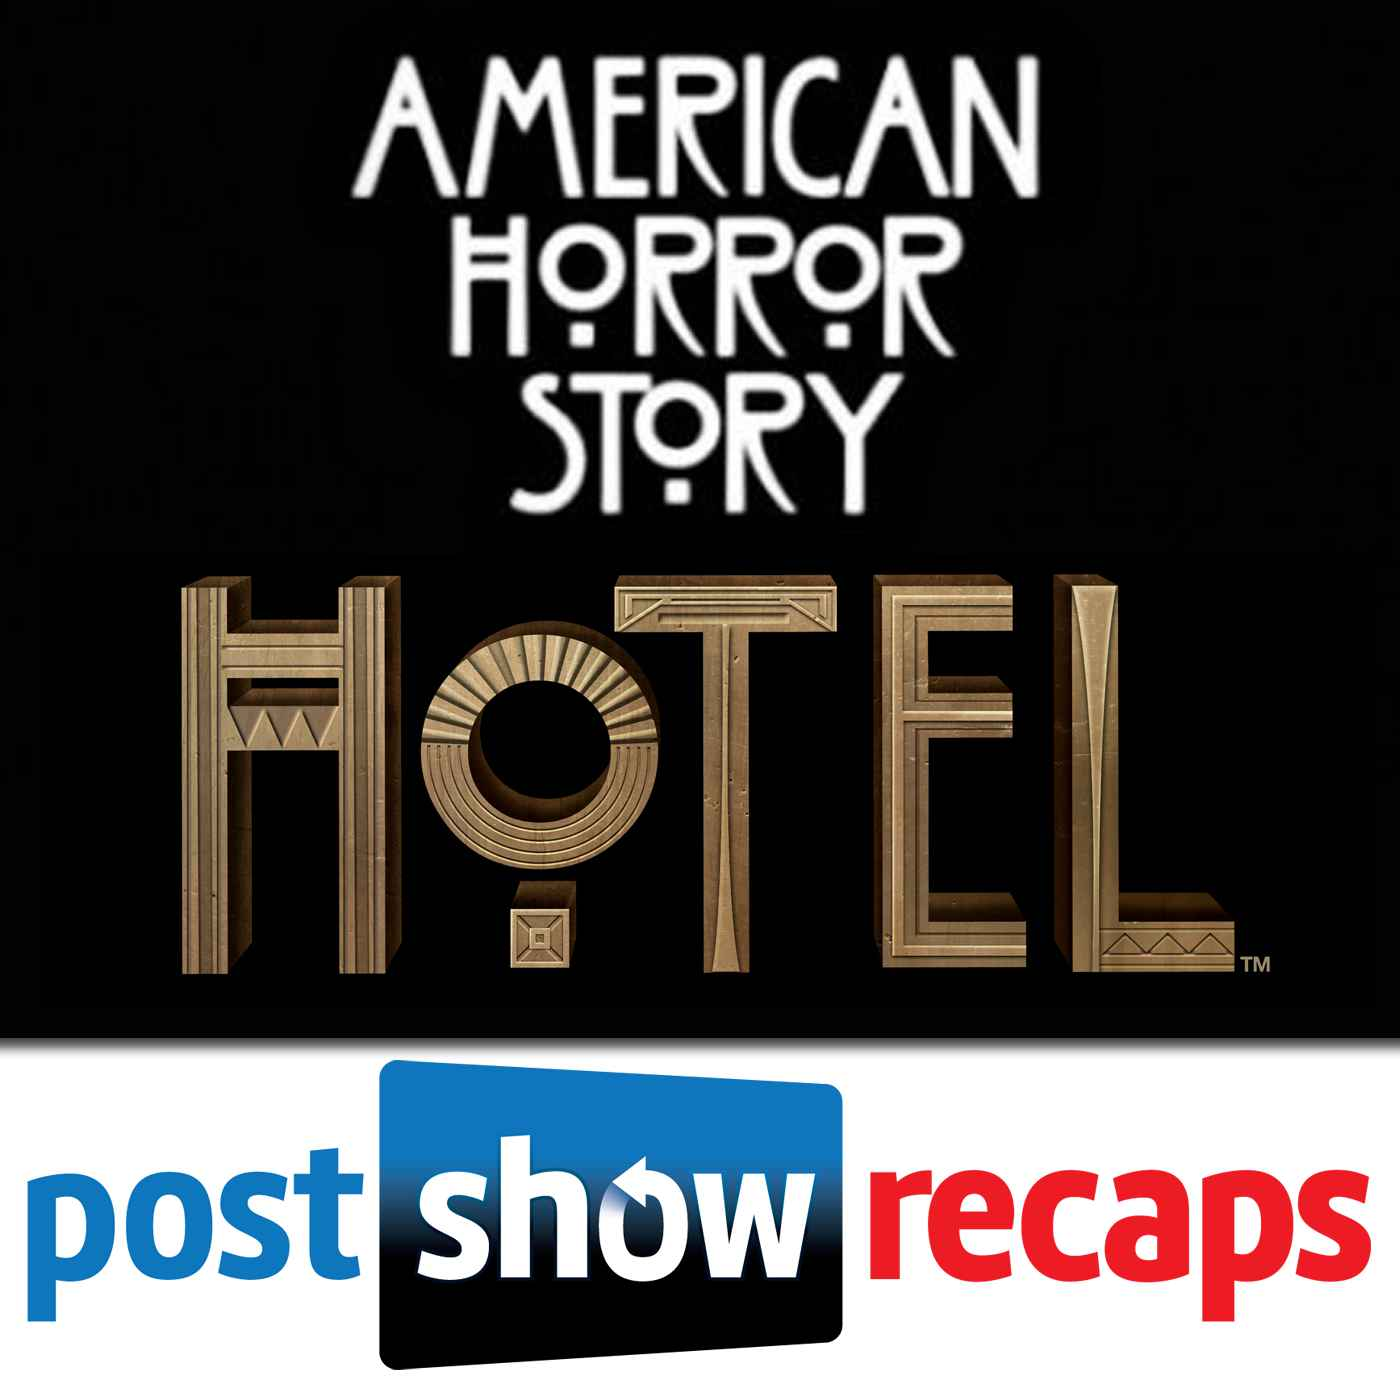 American Horror Story | Post Show Recaps of the FX Series